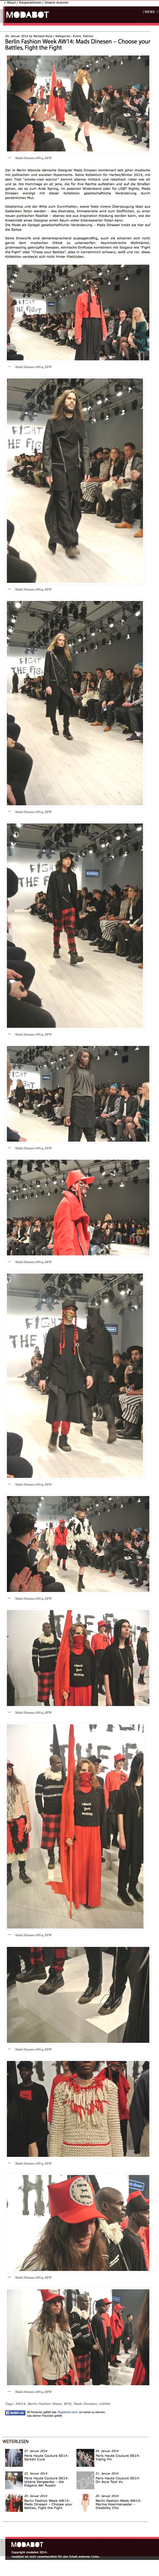 Berlin Fashion Week AW14: Mads Dinesen - Chose your Battles, Fight the Fight | modabot